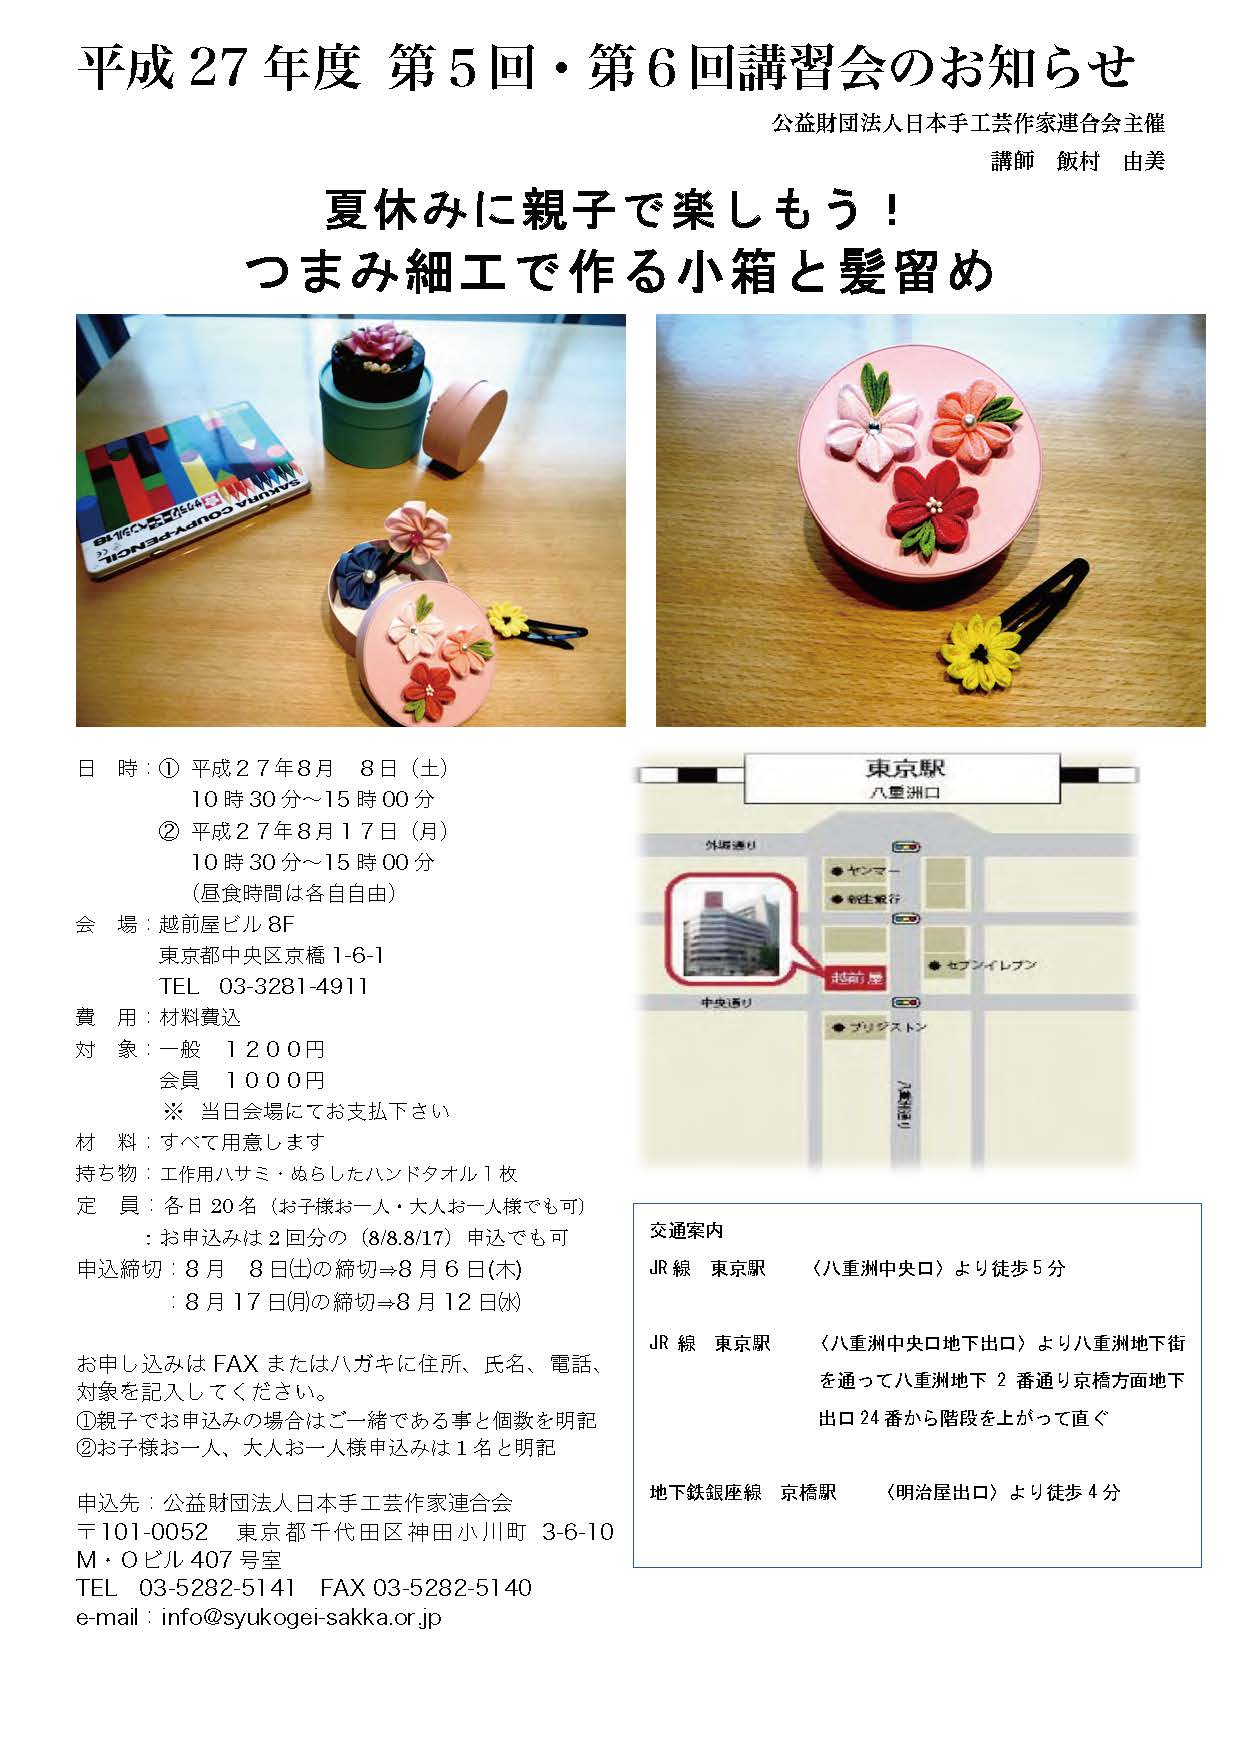 lecture20150808